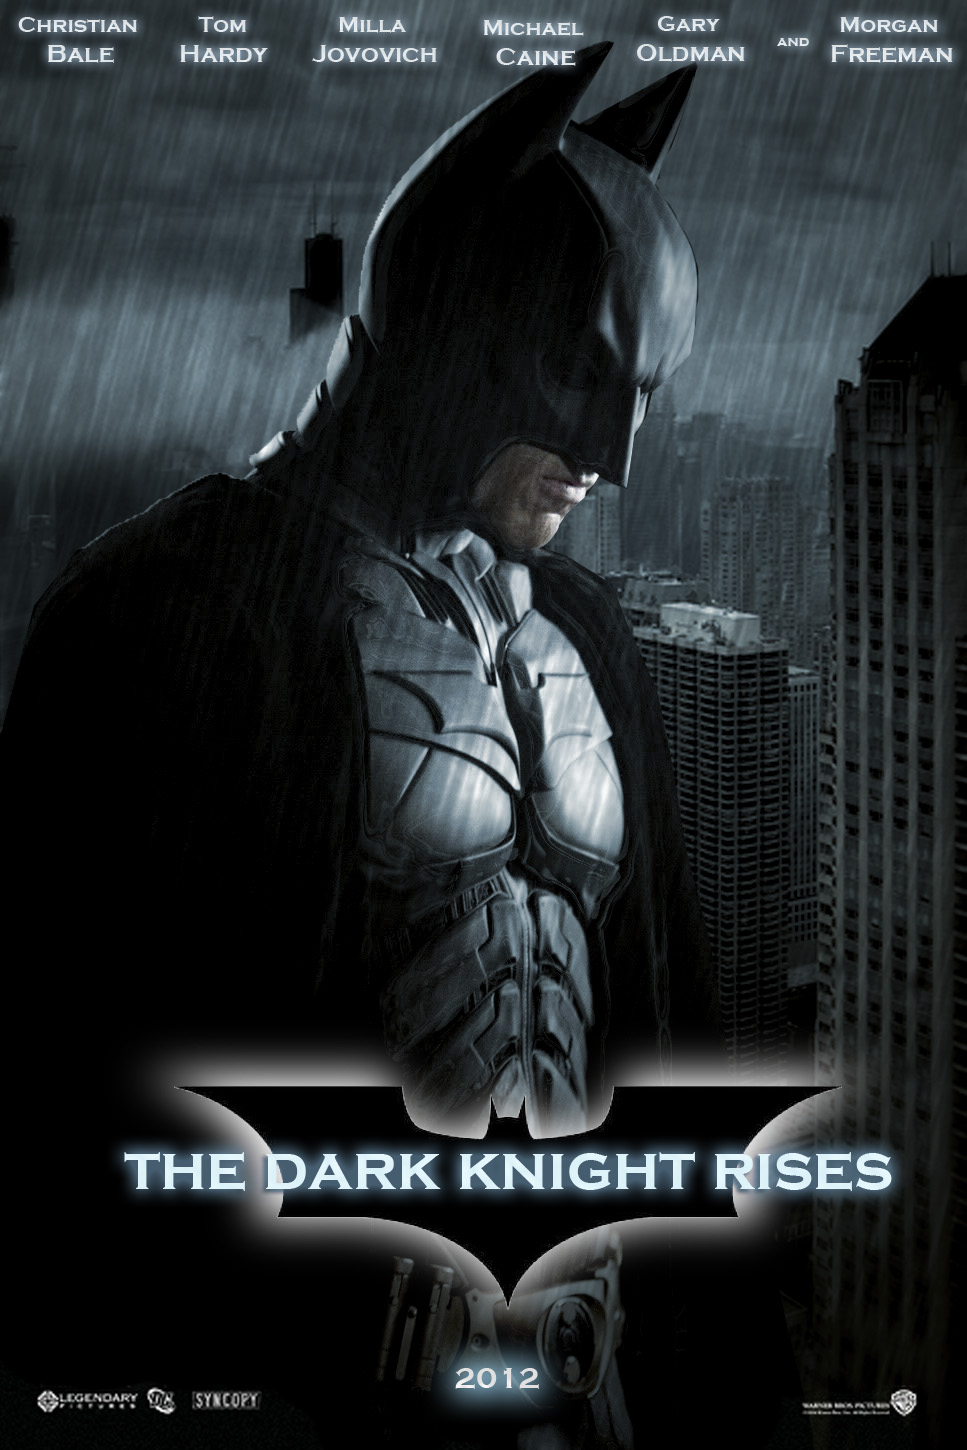 dark knigh rises